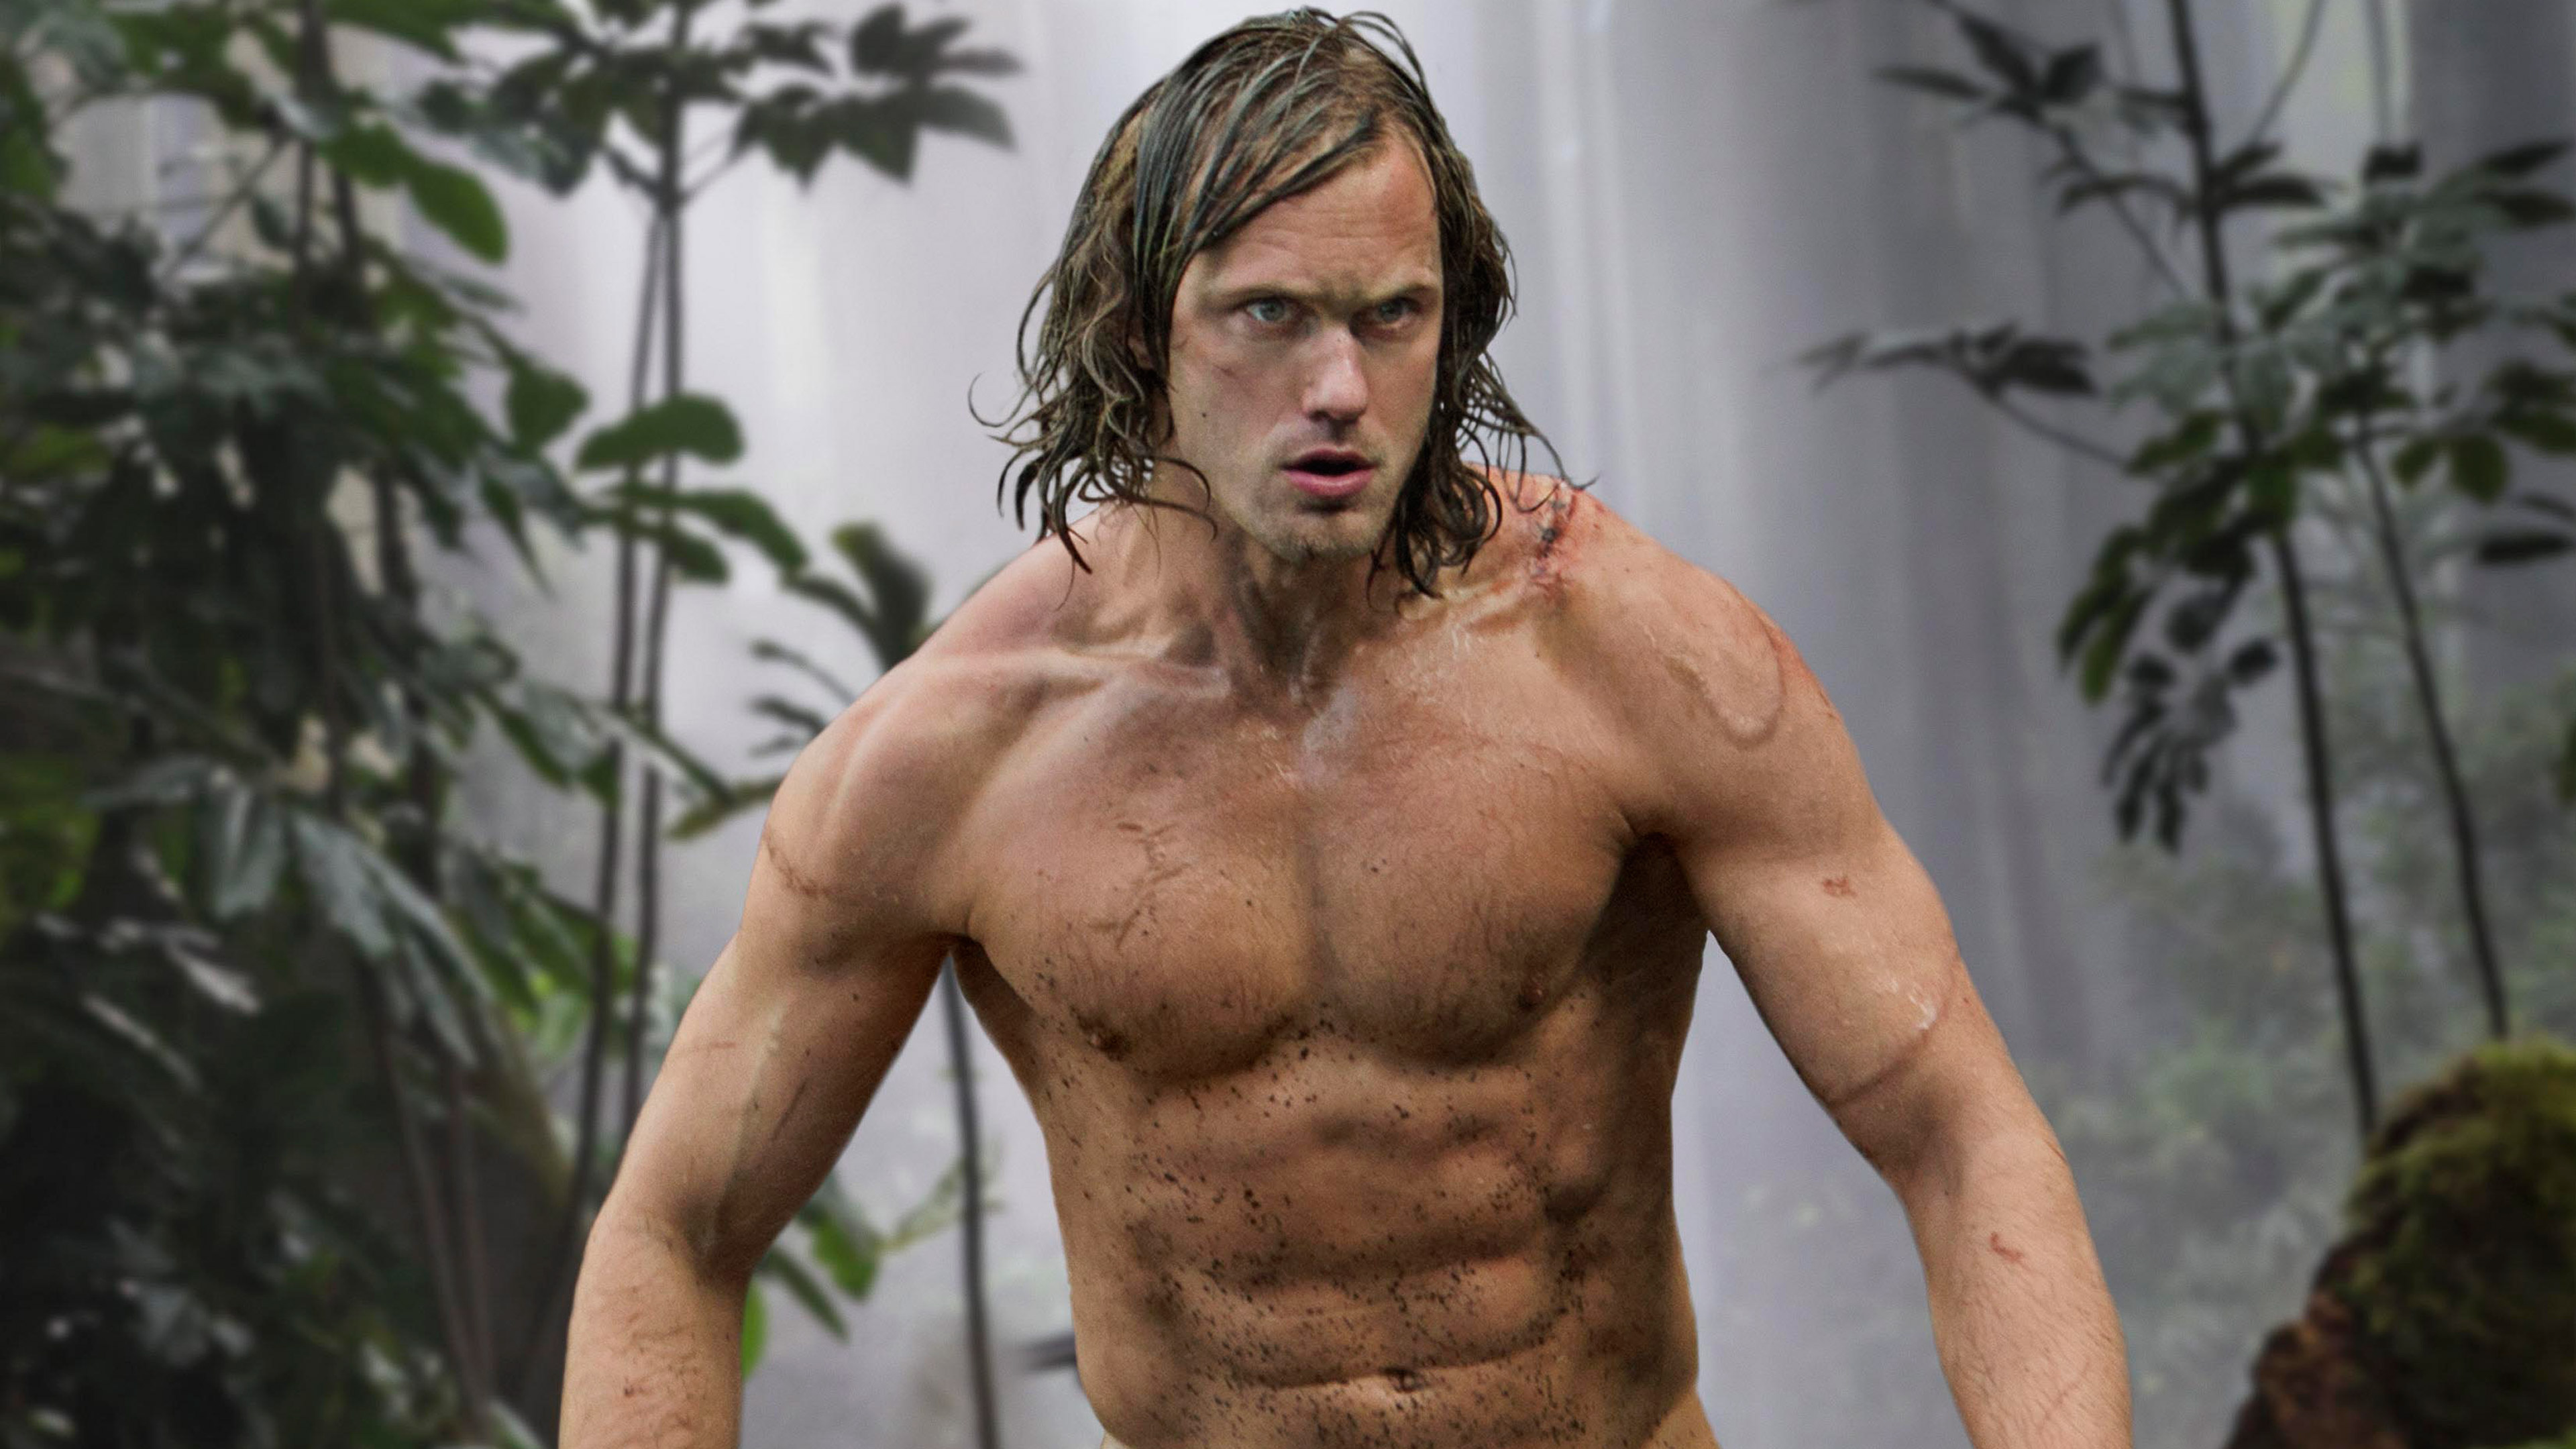 alexander skarsgard the legend of tarzan 1536364156 - Alexander Skarsgard The Legend Of Tarzan - the legend of tarzan wallpapers, tarzan wallpapers, movies wallpapers, 2016 movies wallpapers